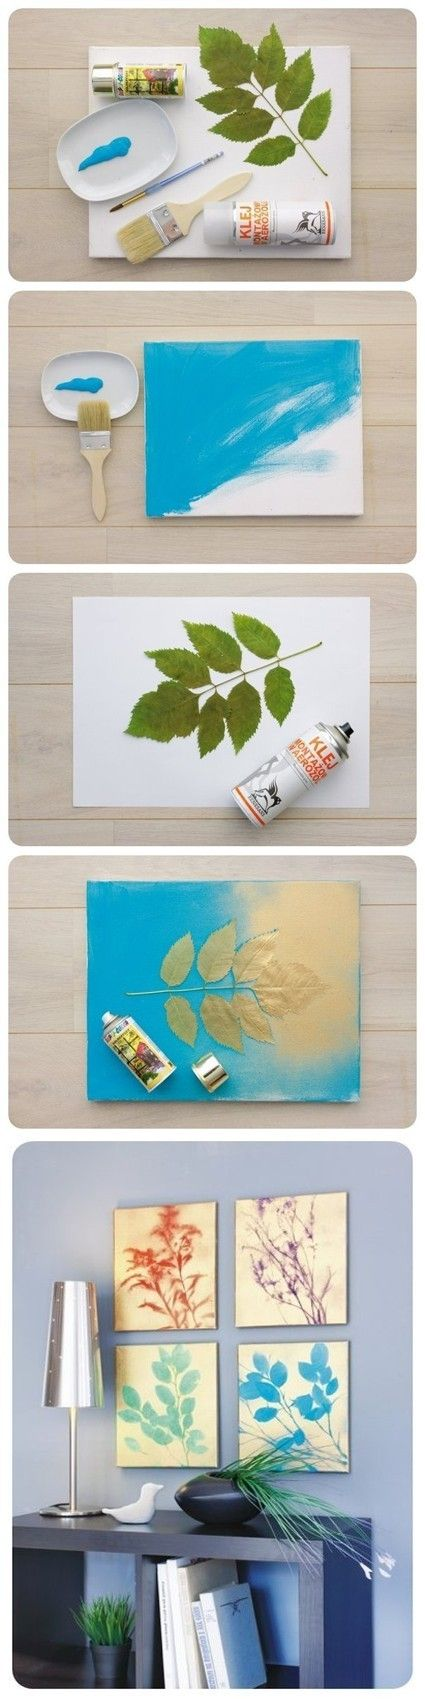 spray pant silhouette leave: Wall Decor, Leaf Paintings, Leaf Prints, Diy Art, Canvas Art, Paintings Leaves, Diy Wall Art, Sprays Paintings, Leaf Art